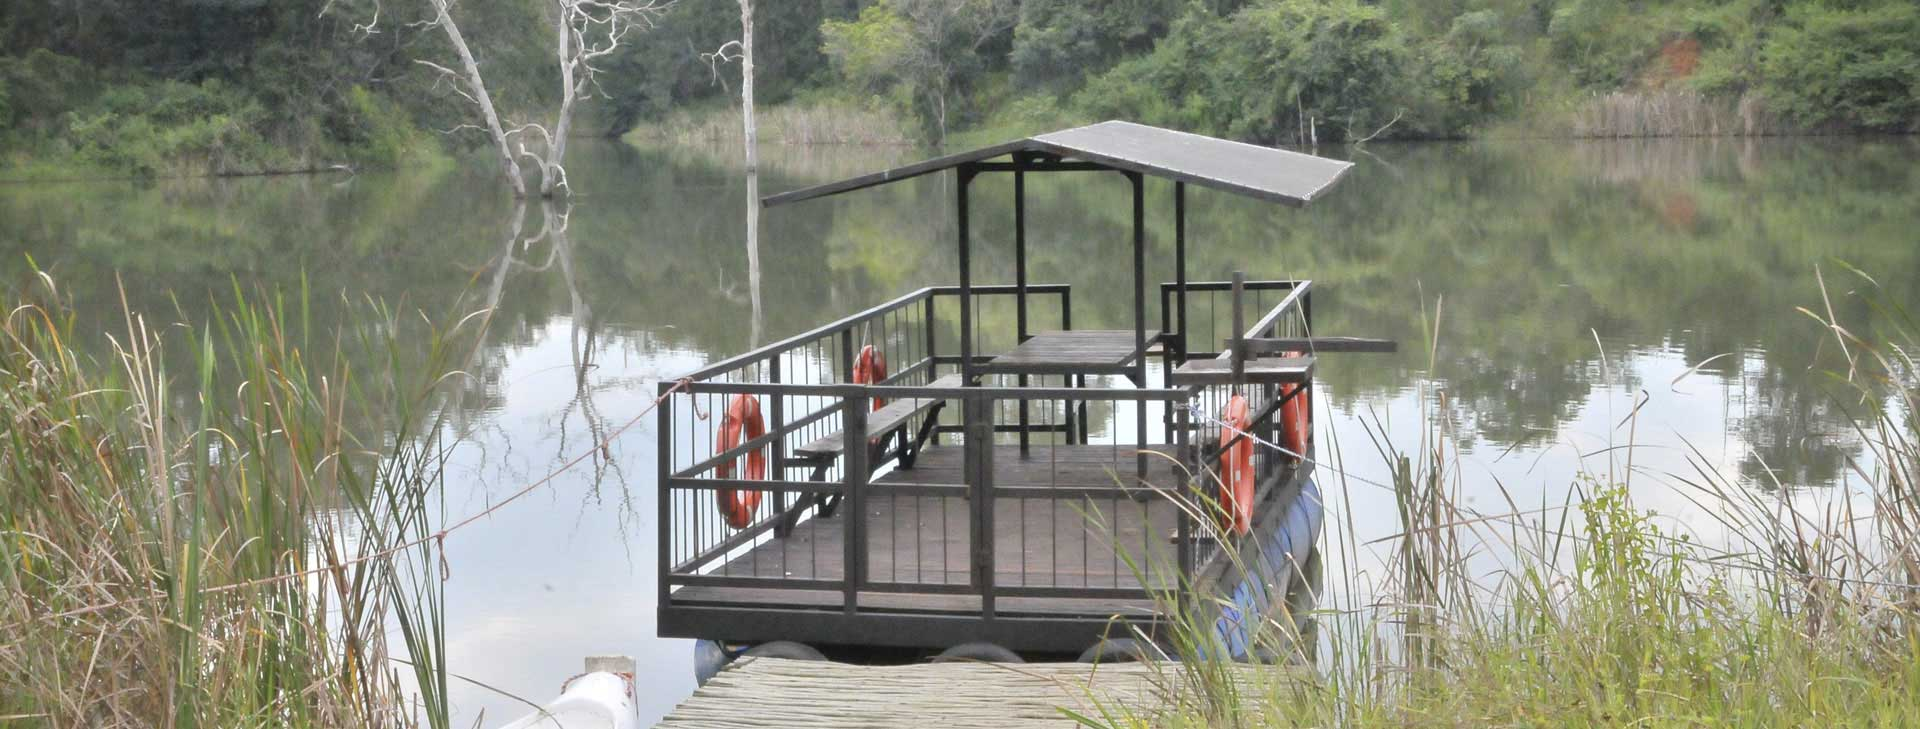 Tzaneen Country Lodge offers Sunset or Sunrise Cruise on the barge